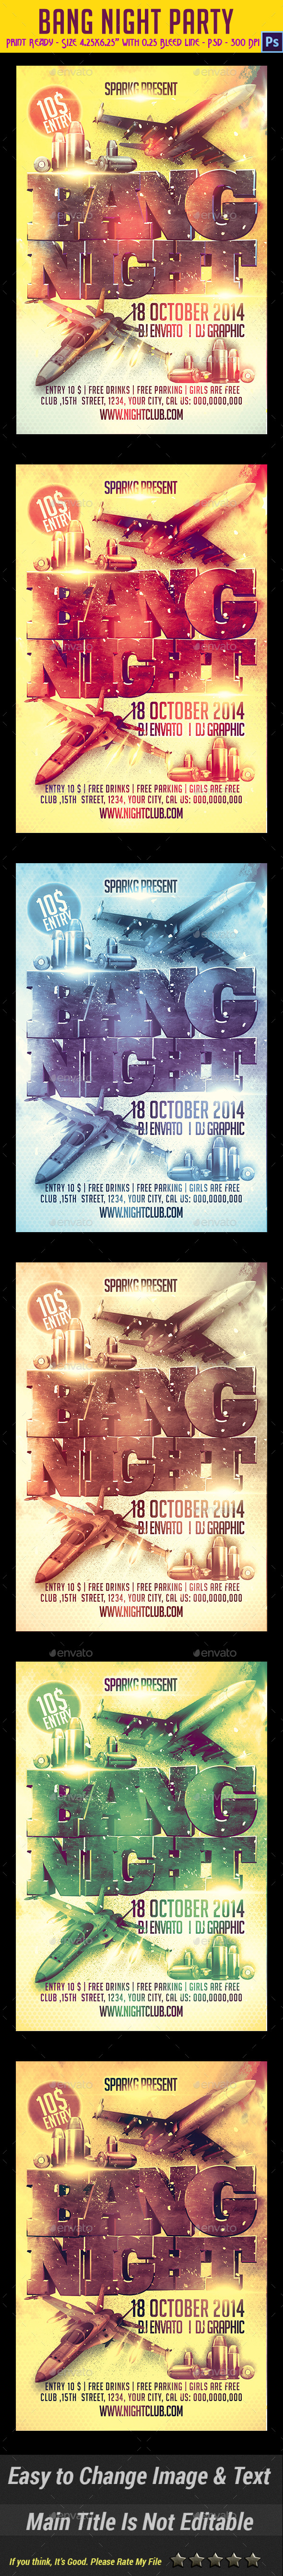 Bang Night Party Flyer - Clubs & Parties Events